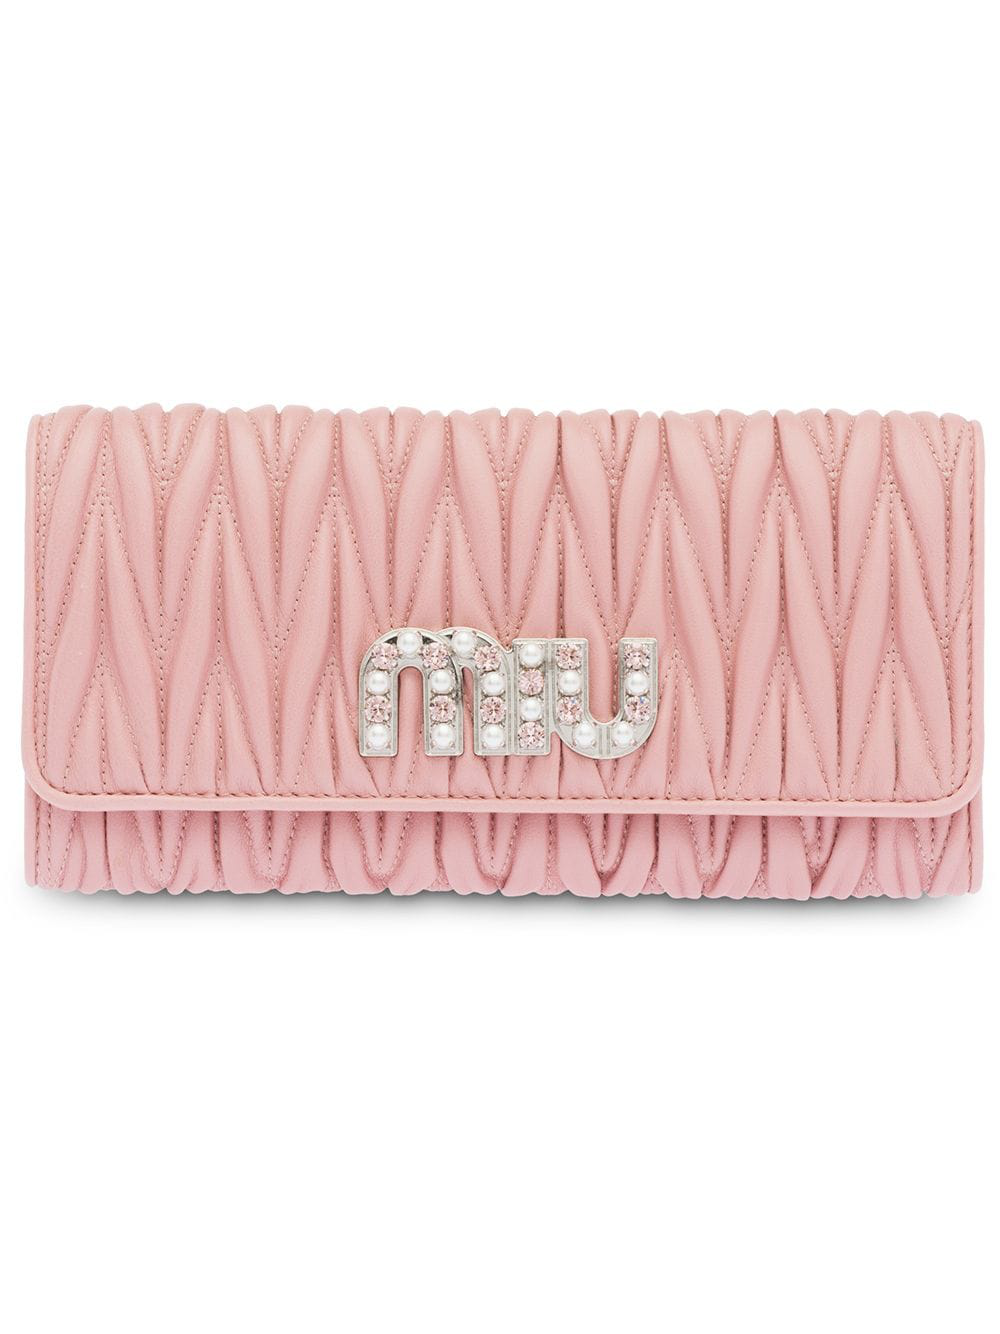 20729302527 Miu Miu Matelassé Nappa Leather Wallet - Pink